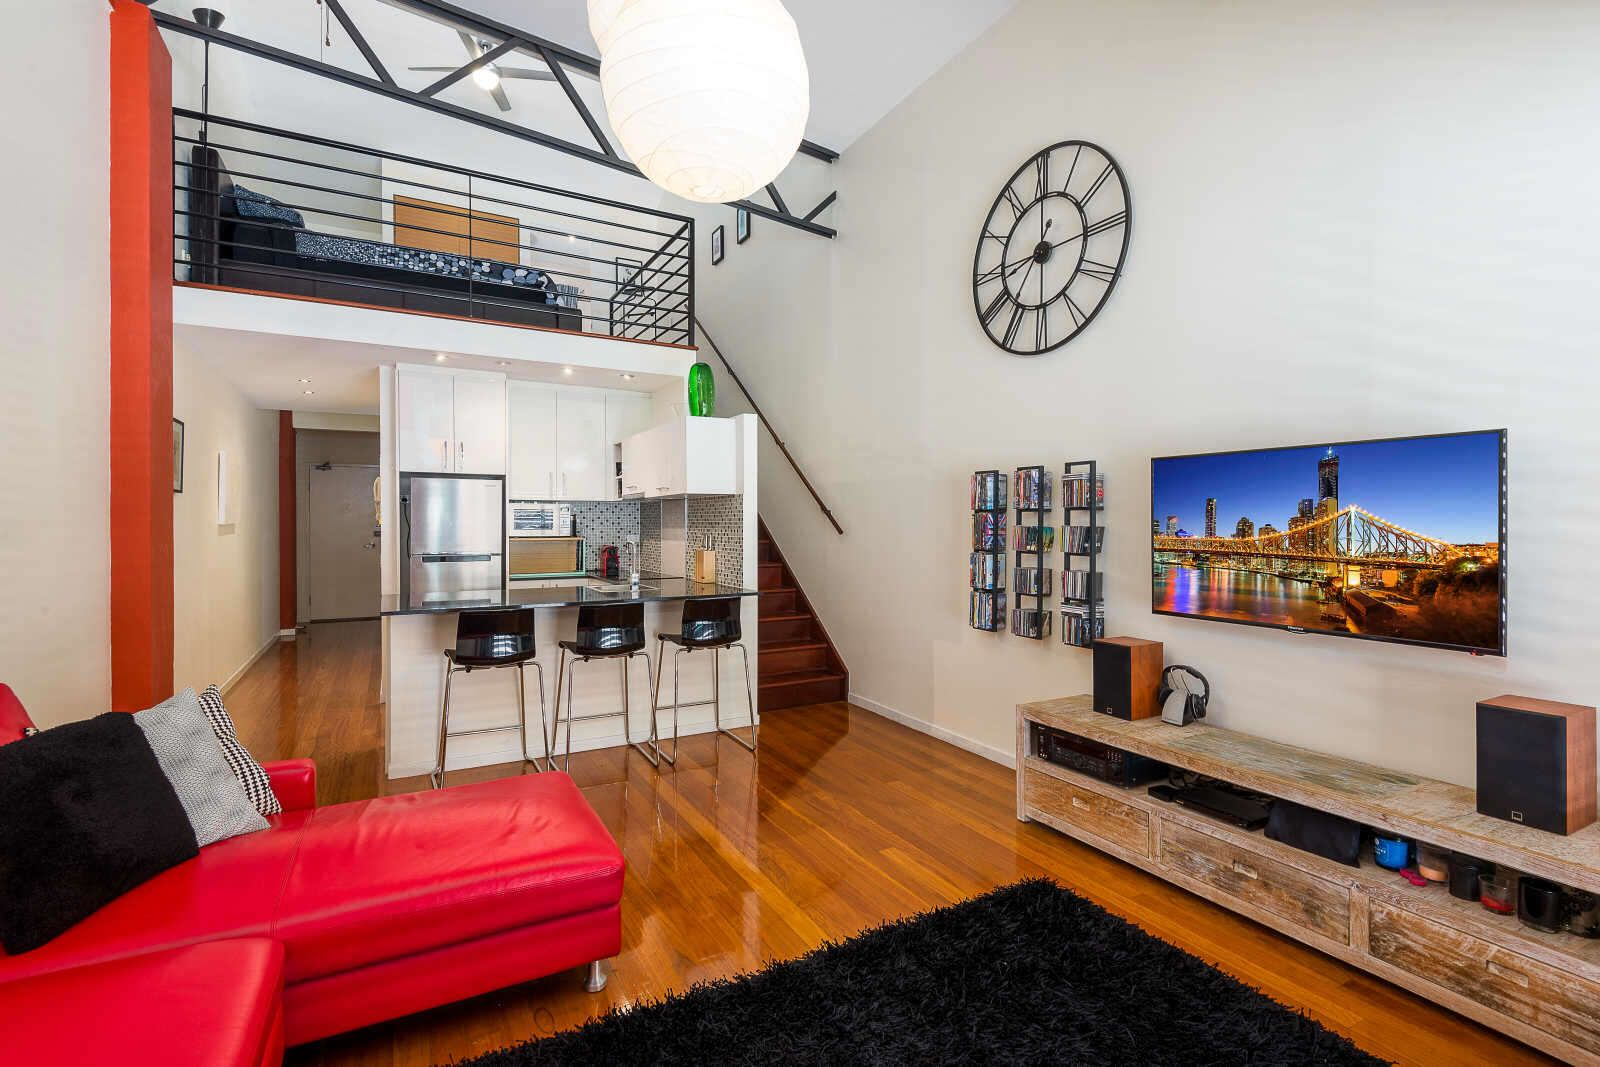 17/27 Ballow Street, Fortitude Valley QLD 4006, Image 0